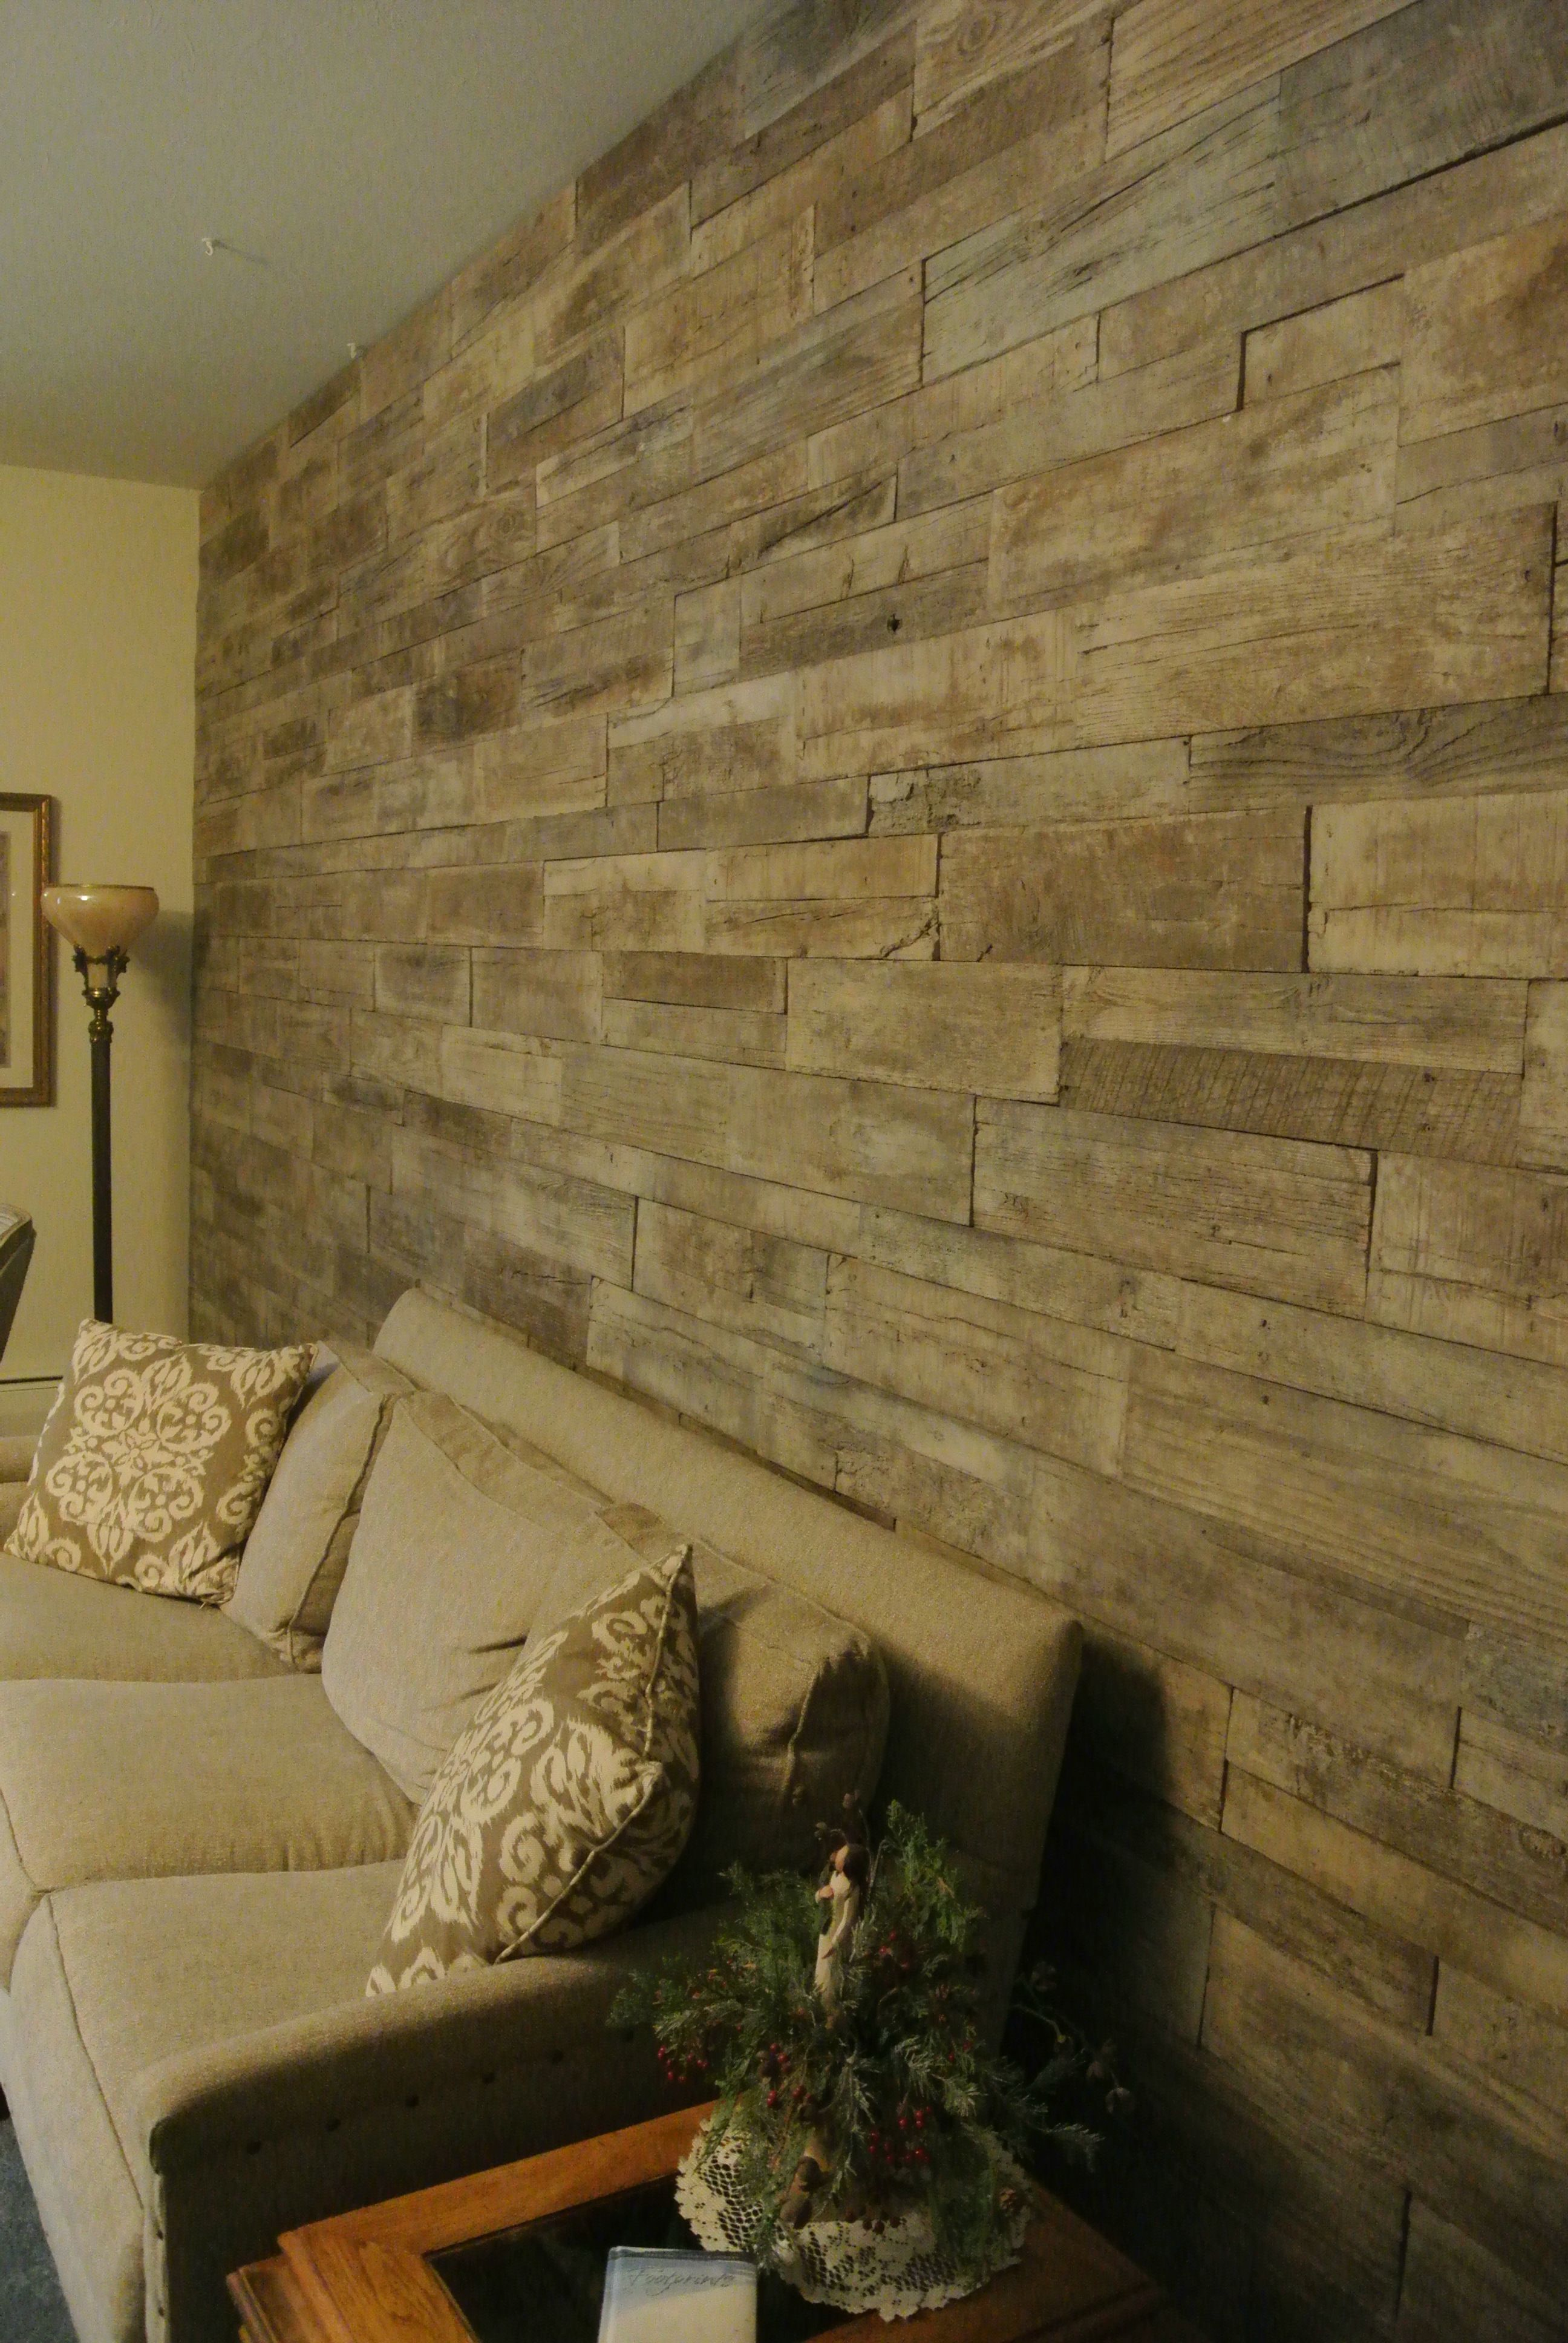 rectangle square block damme straight interior en art stone brickwork hardwood texture floor construction photo a wall background images pattern free flooring line brick material wood